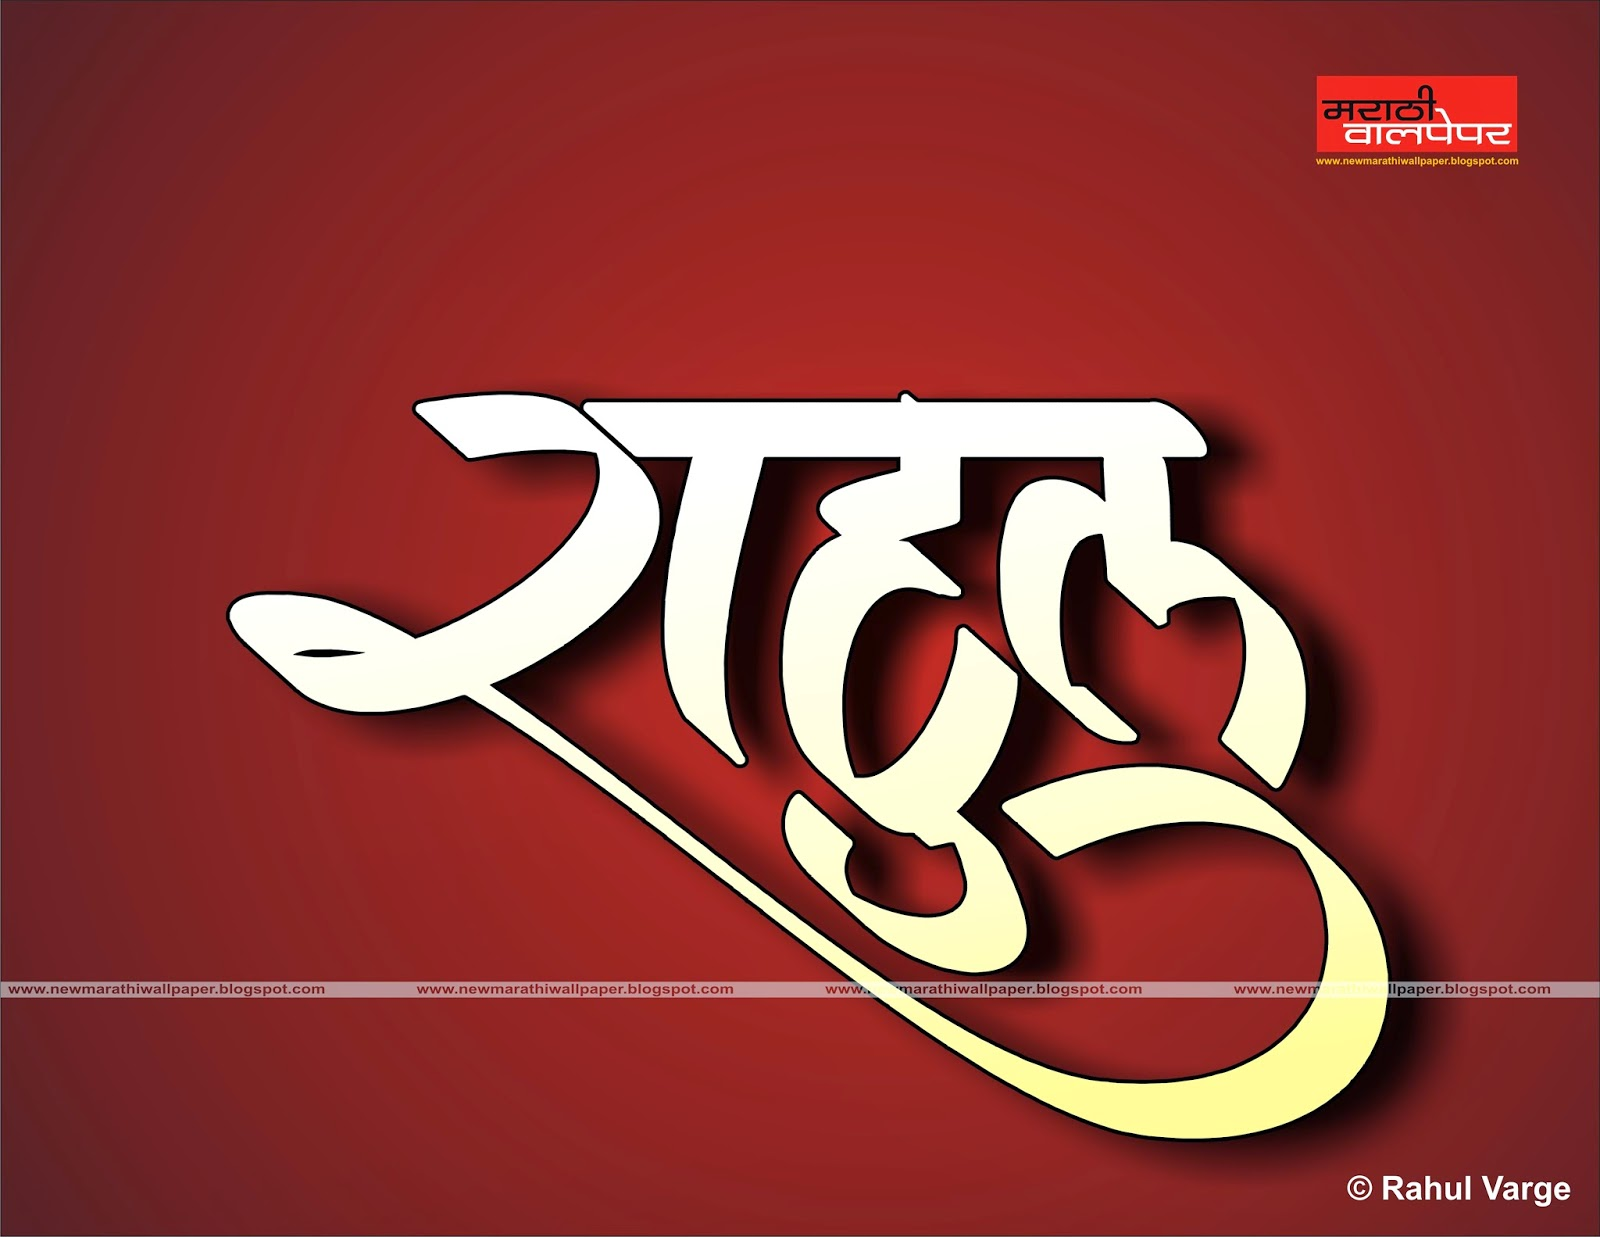 New Marathi Wallpaper Your Name Wallpaper Tattoo Design Bild